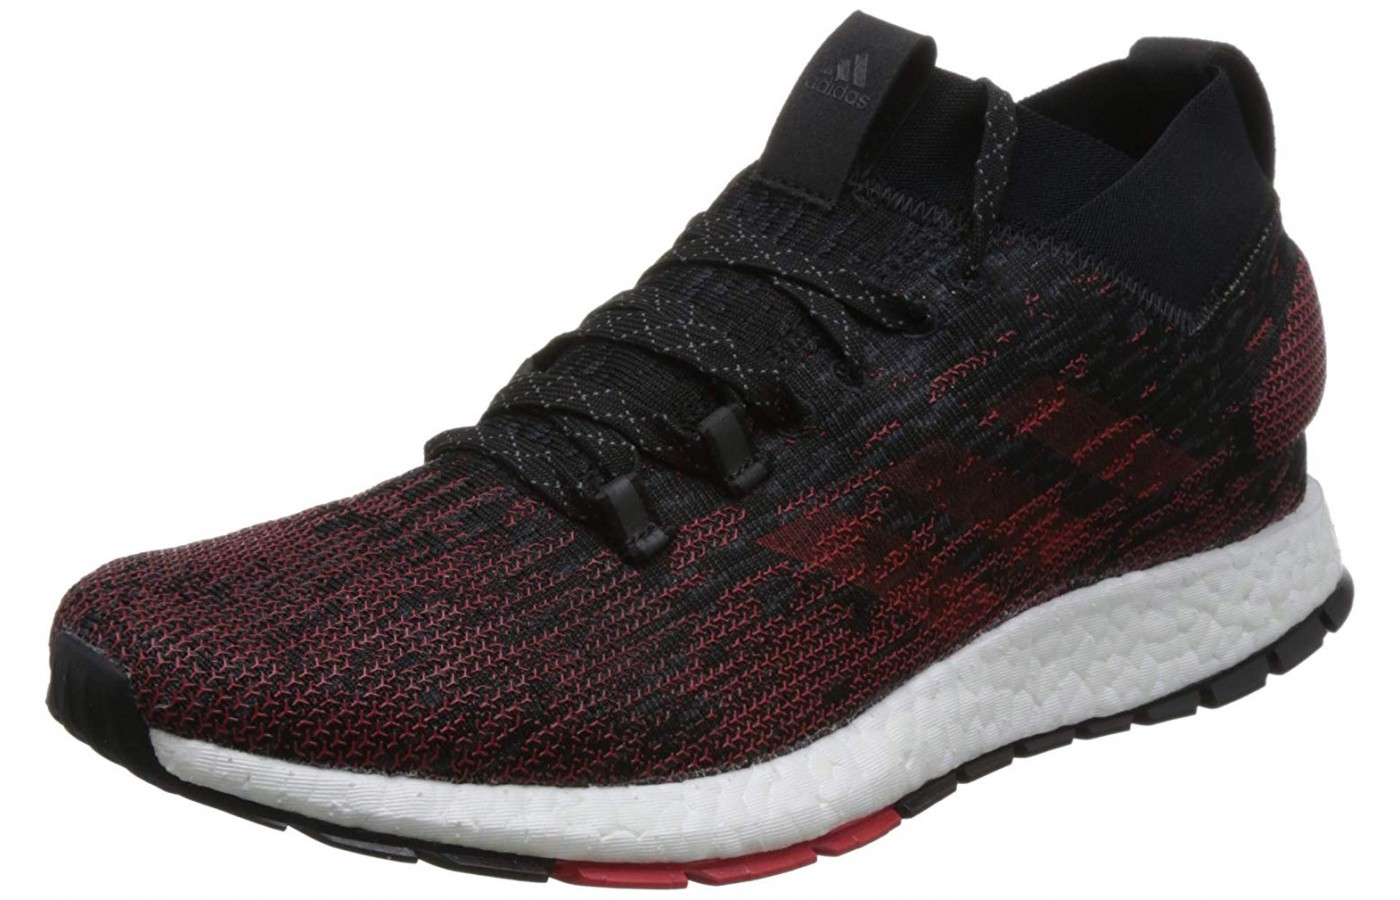 Adidas Pureboost RBL from the left